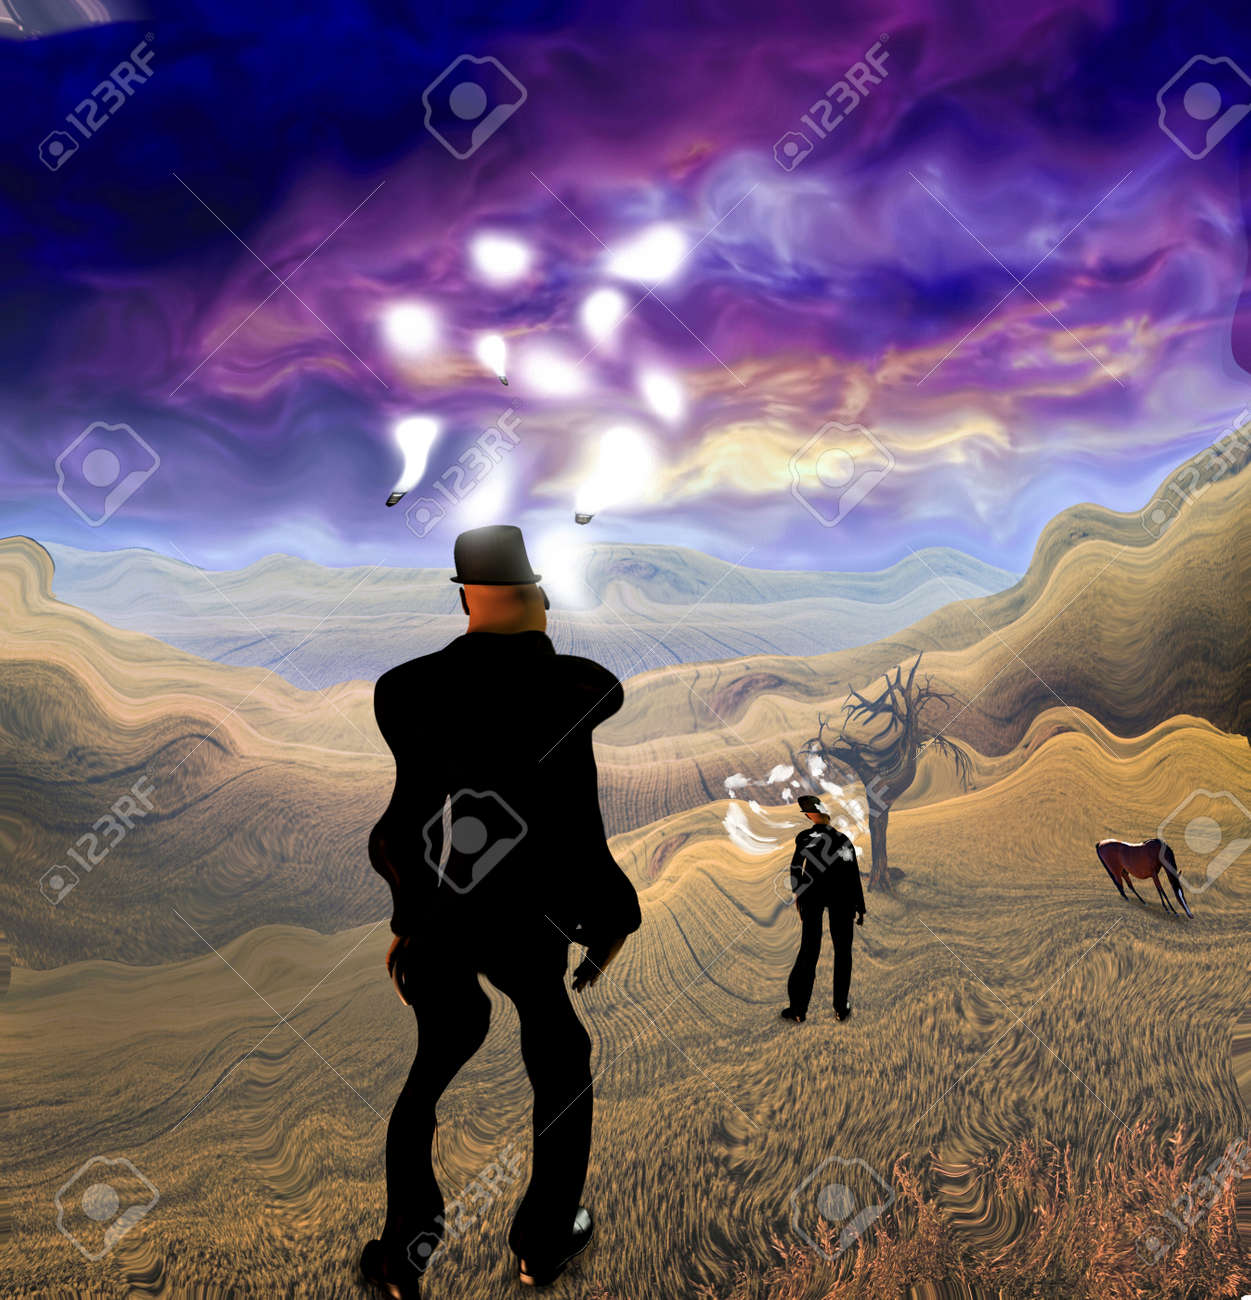 Surreal Painting Man In Suit Stands In Field Light Bulbs Around Stock Photo Picture And Royalty Free Image Image 92700980